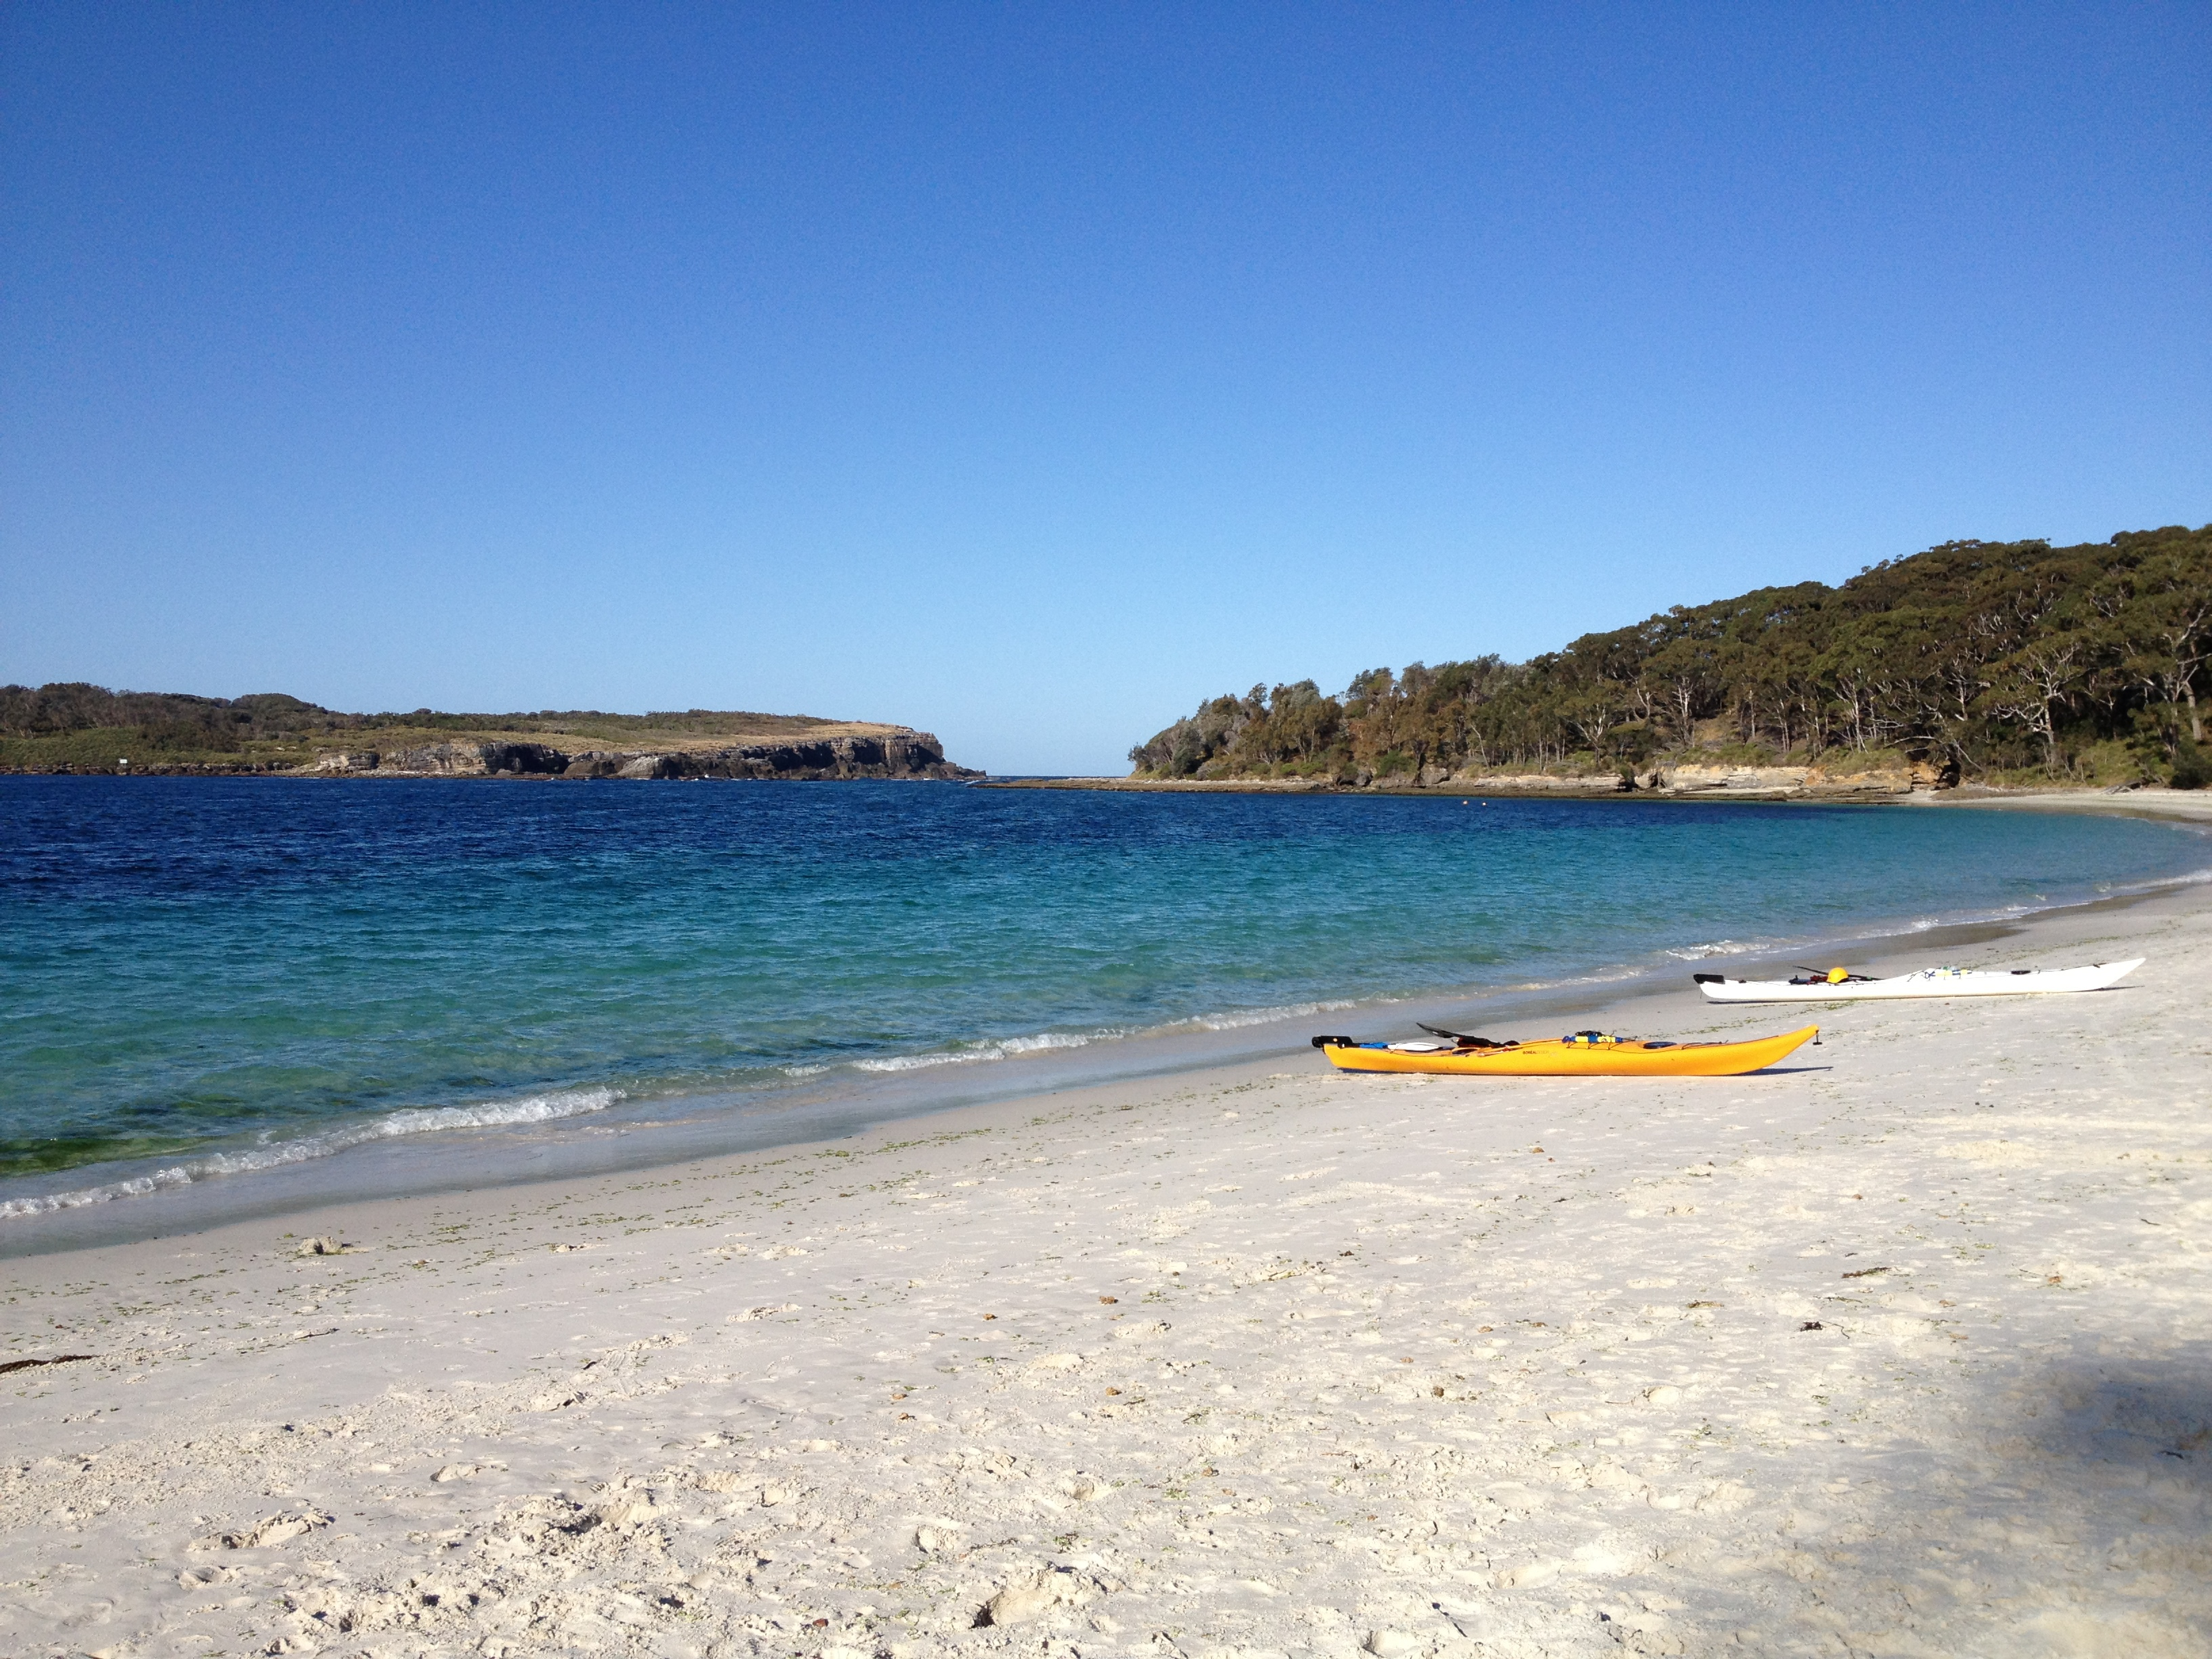 Murrays Beach Has Calm Low Slow Lapping Waves Making This Beach A Very Popular Location For Kayaking And Shallow Swimming Murrays Beach Is Tucked Behind